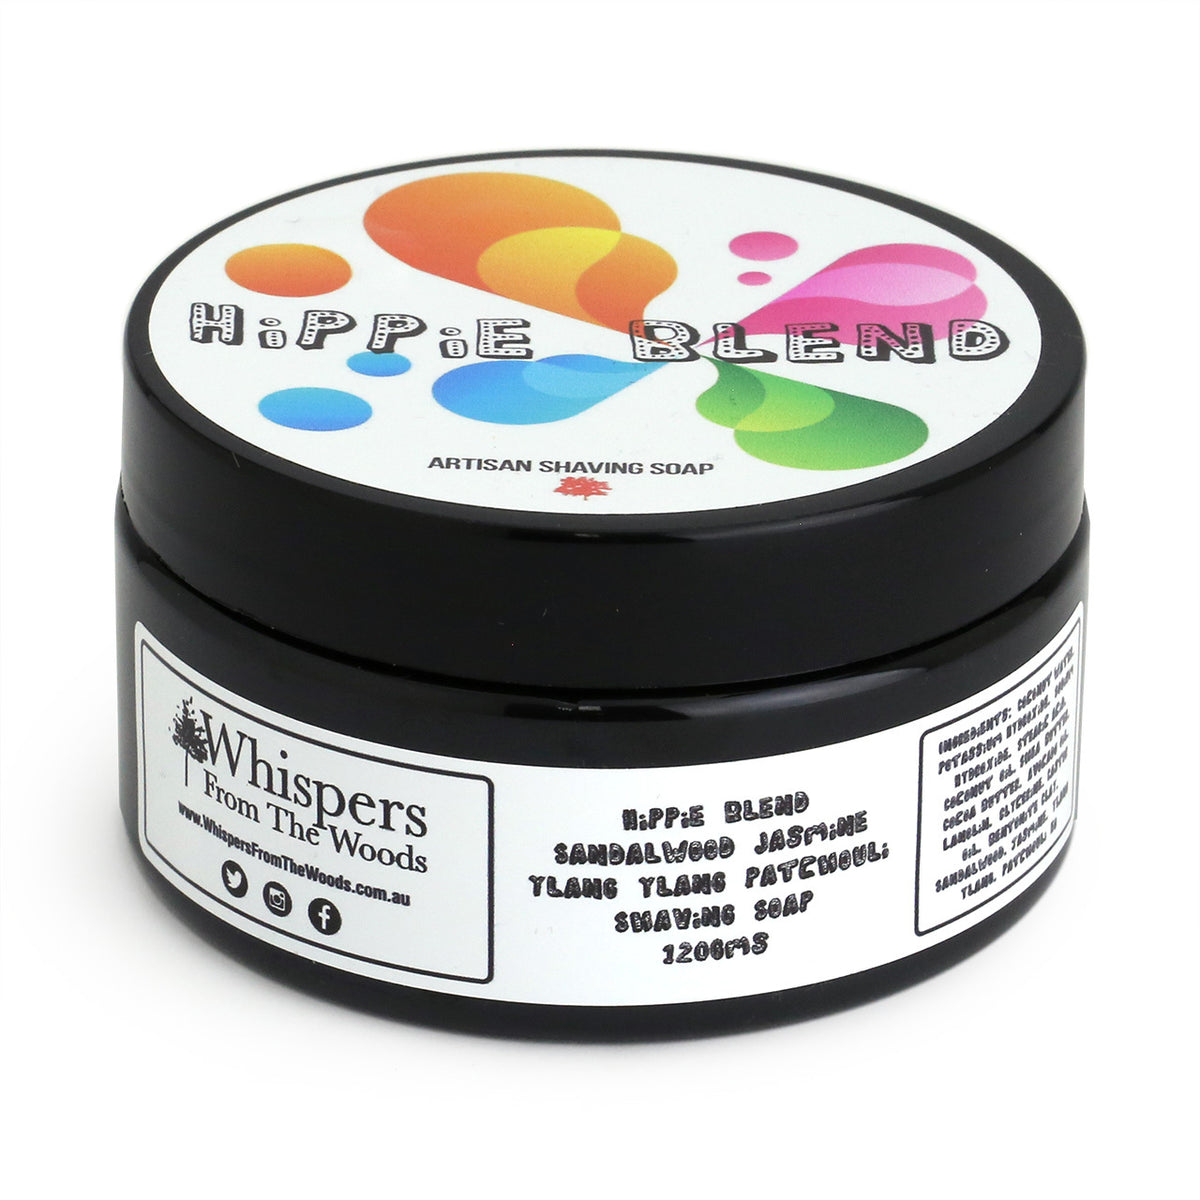 Whispers from the Woods Shaving Soap - Hippie Blend